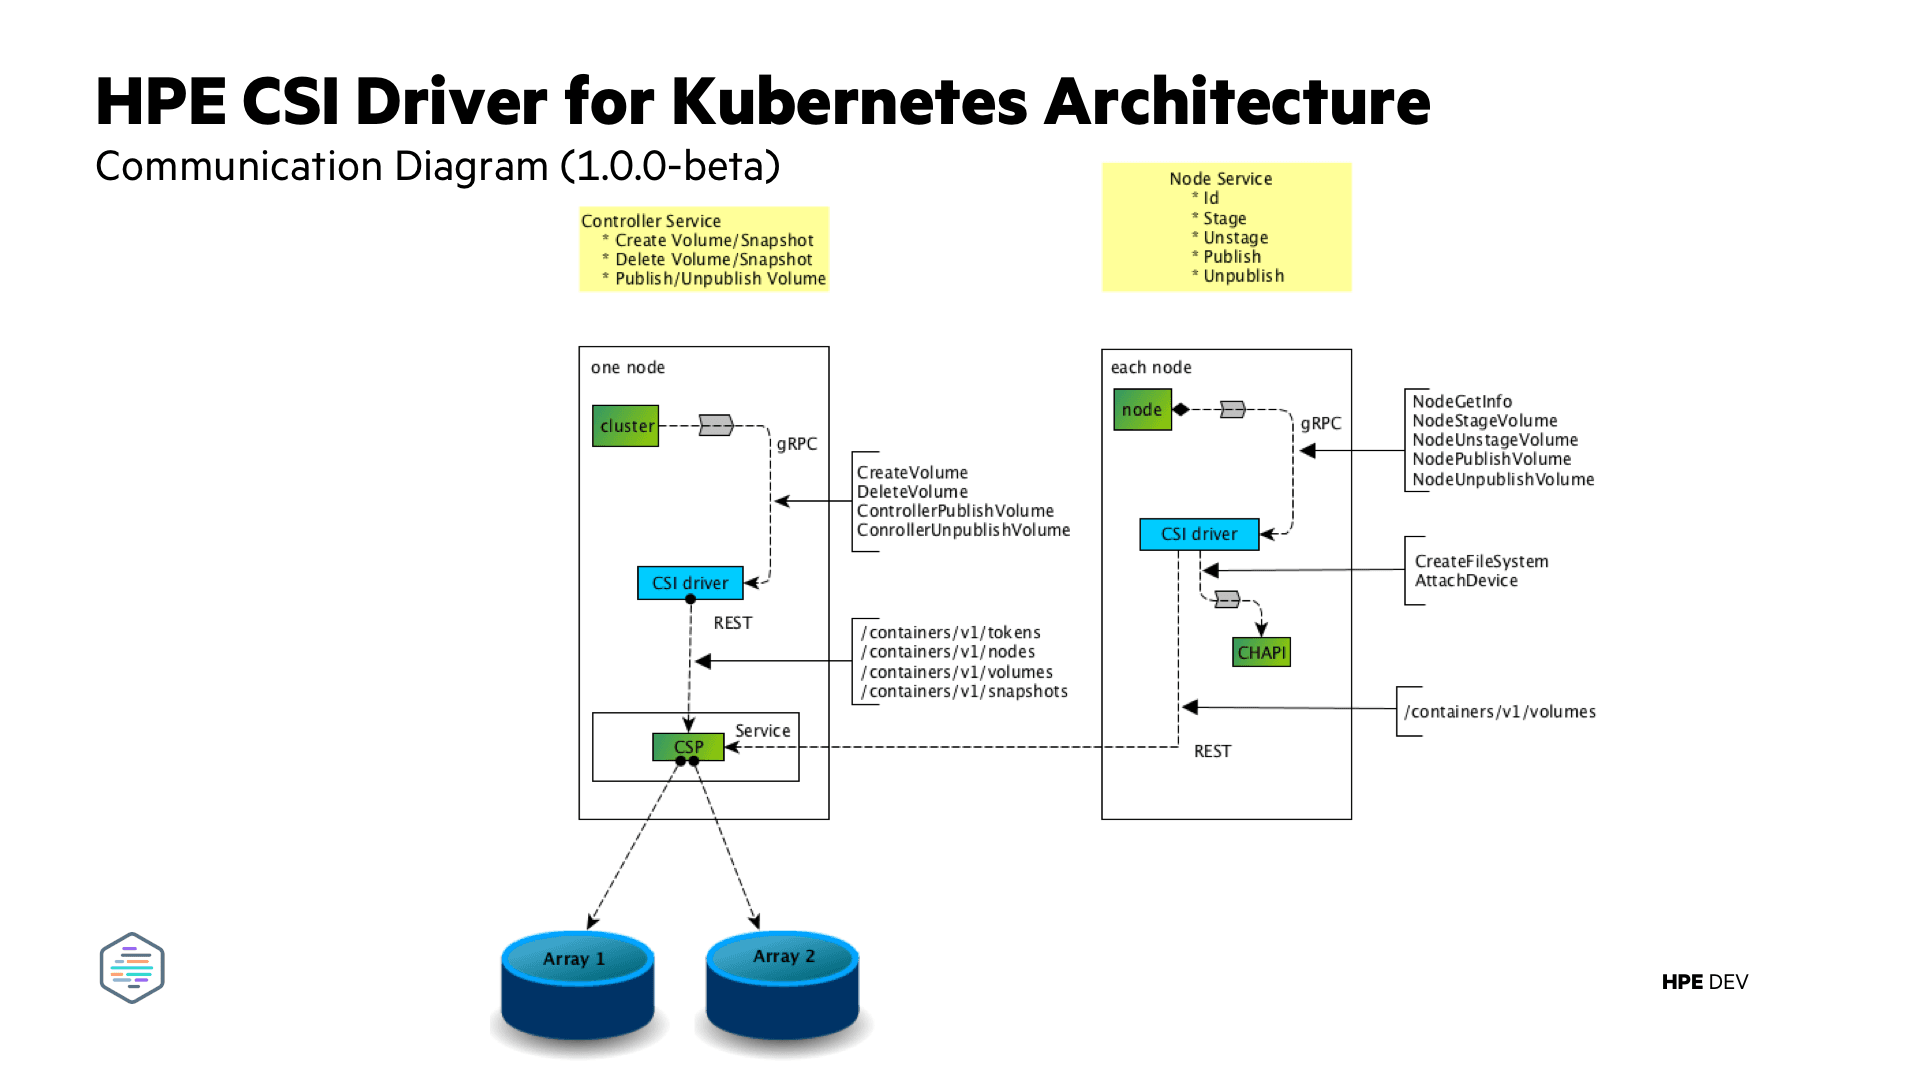 Communication diagram for the HPE CSI Driver for Kubernetes